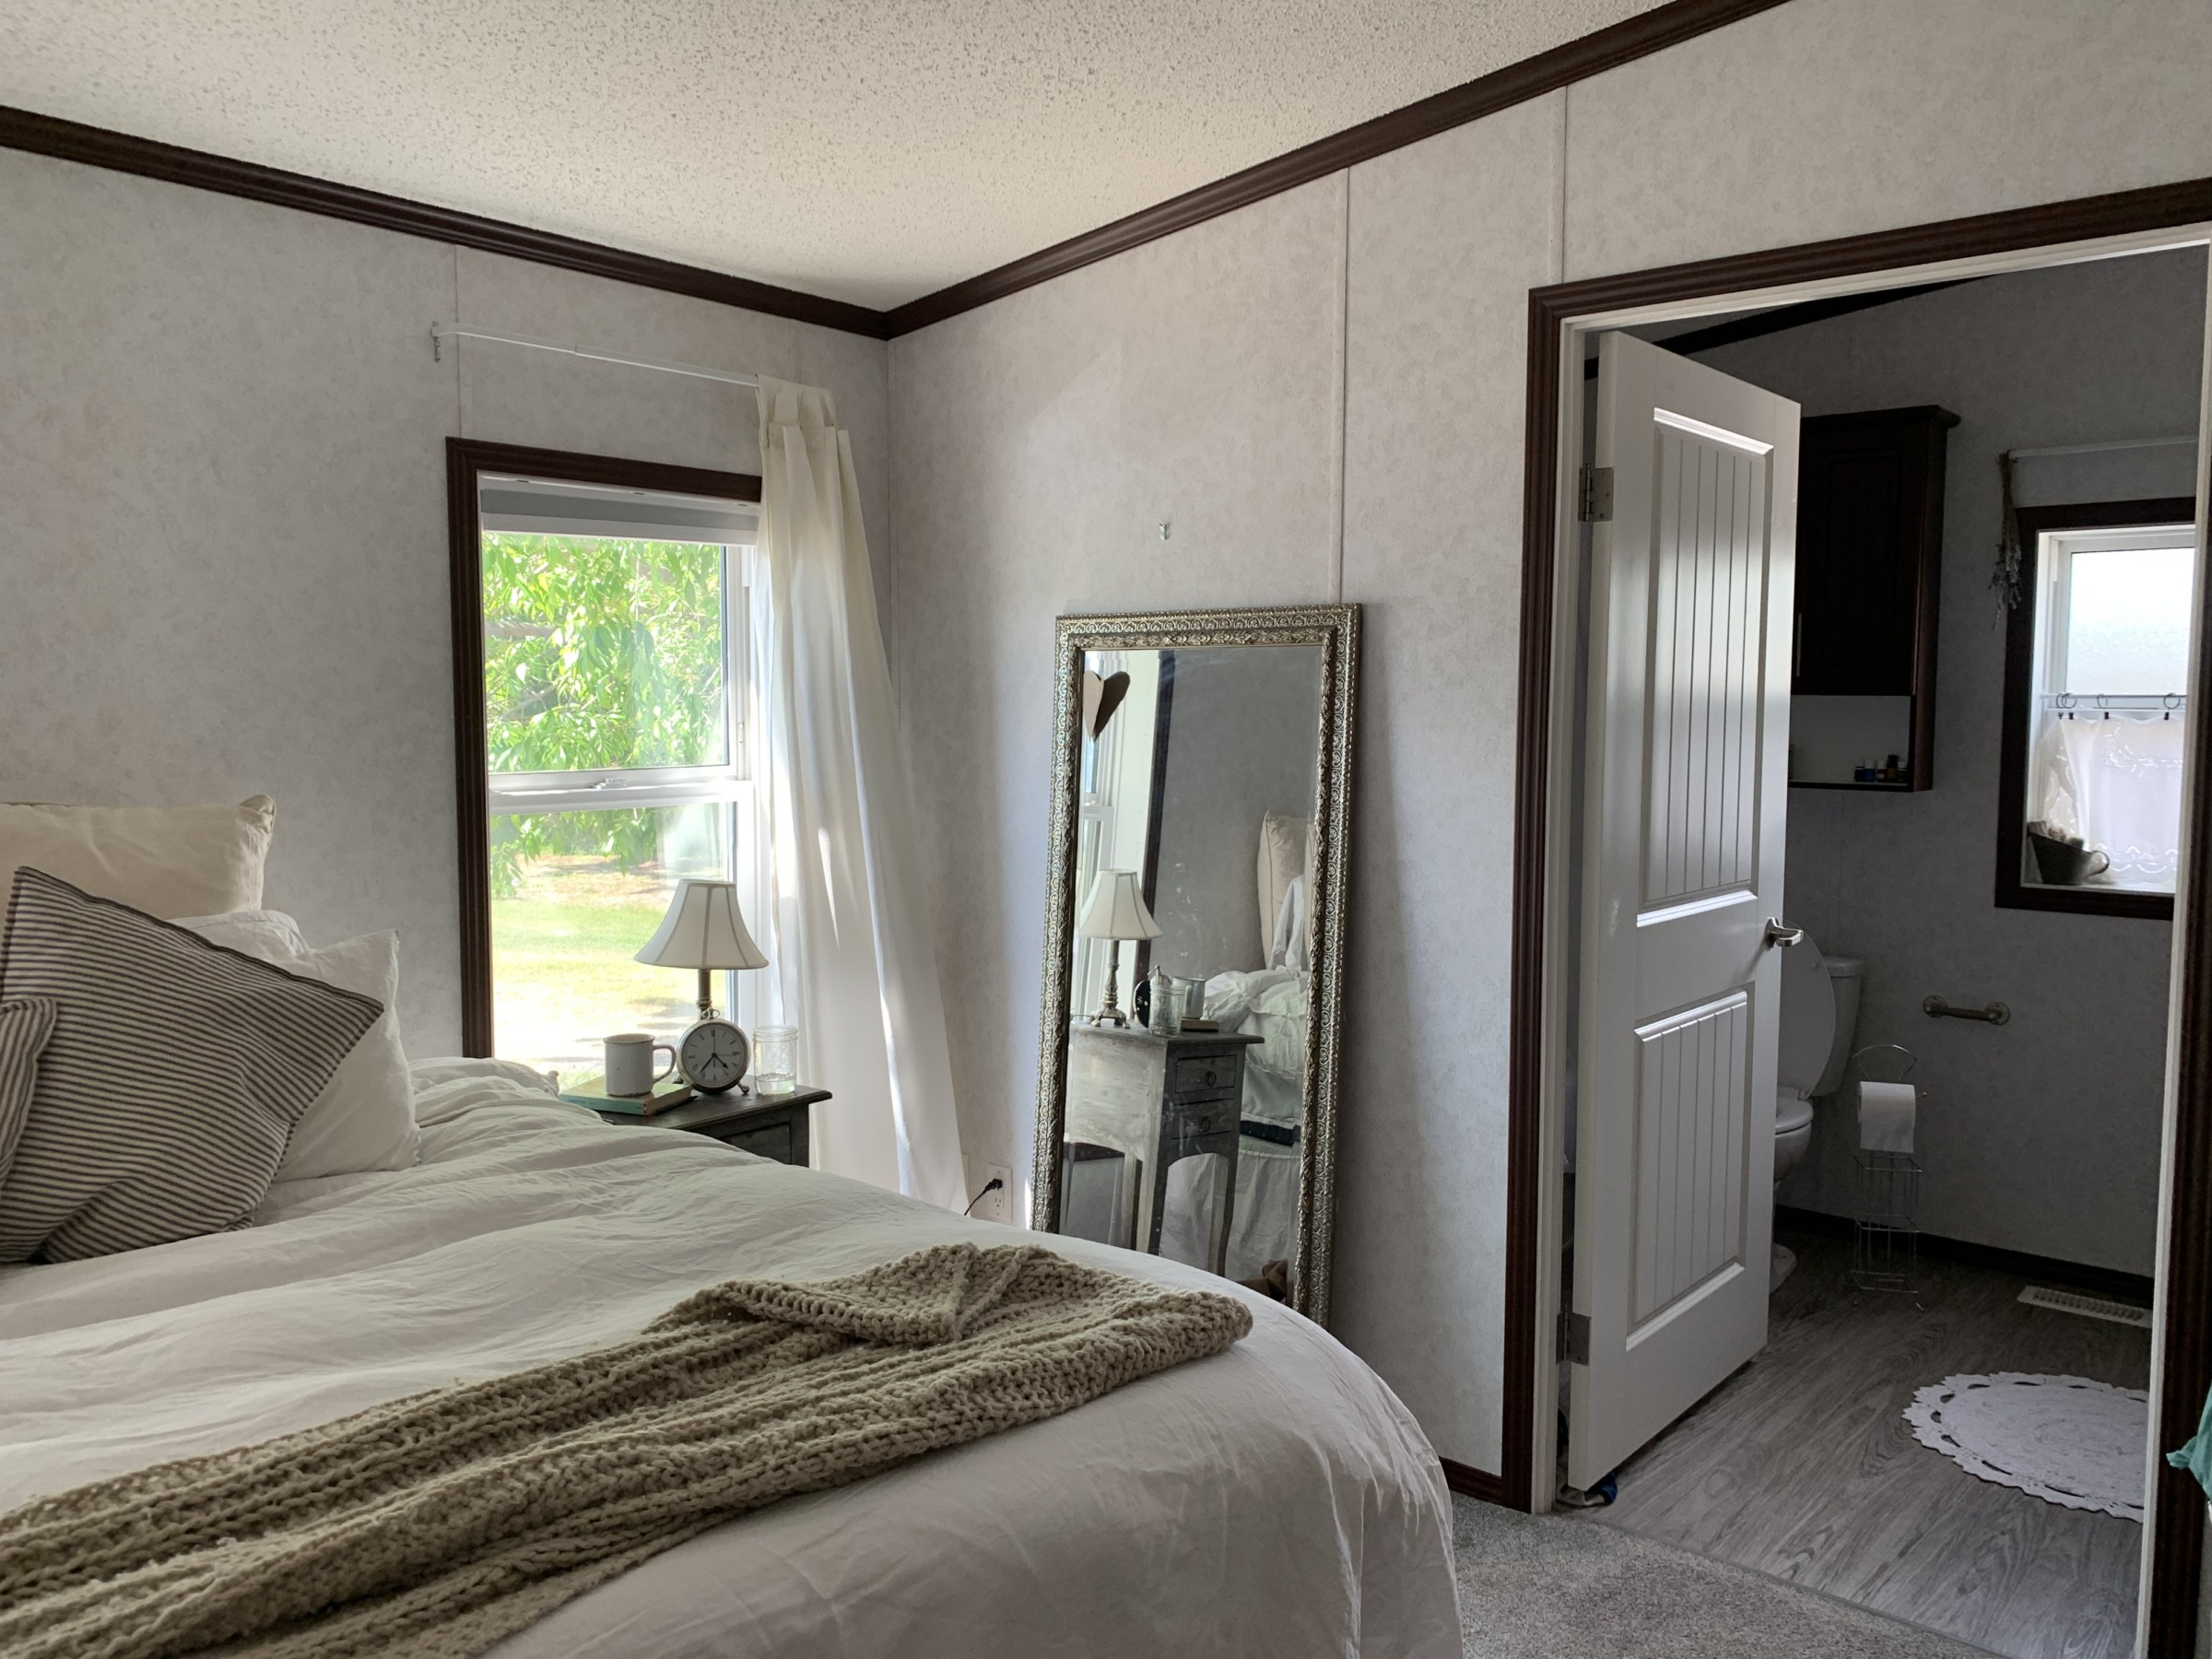 Farmhouse bedroom makeover - BEFORE